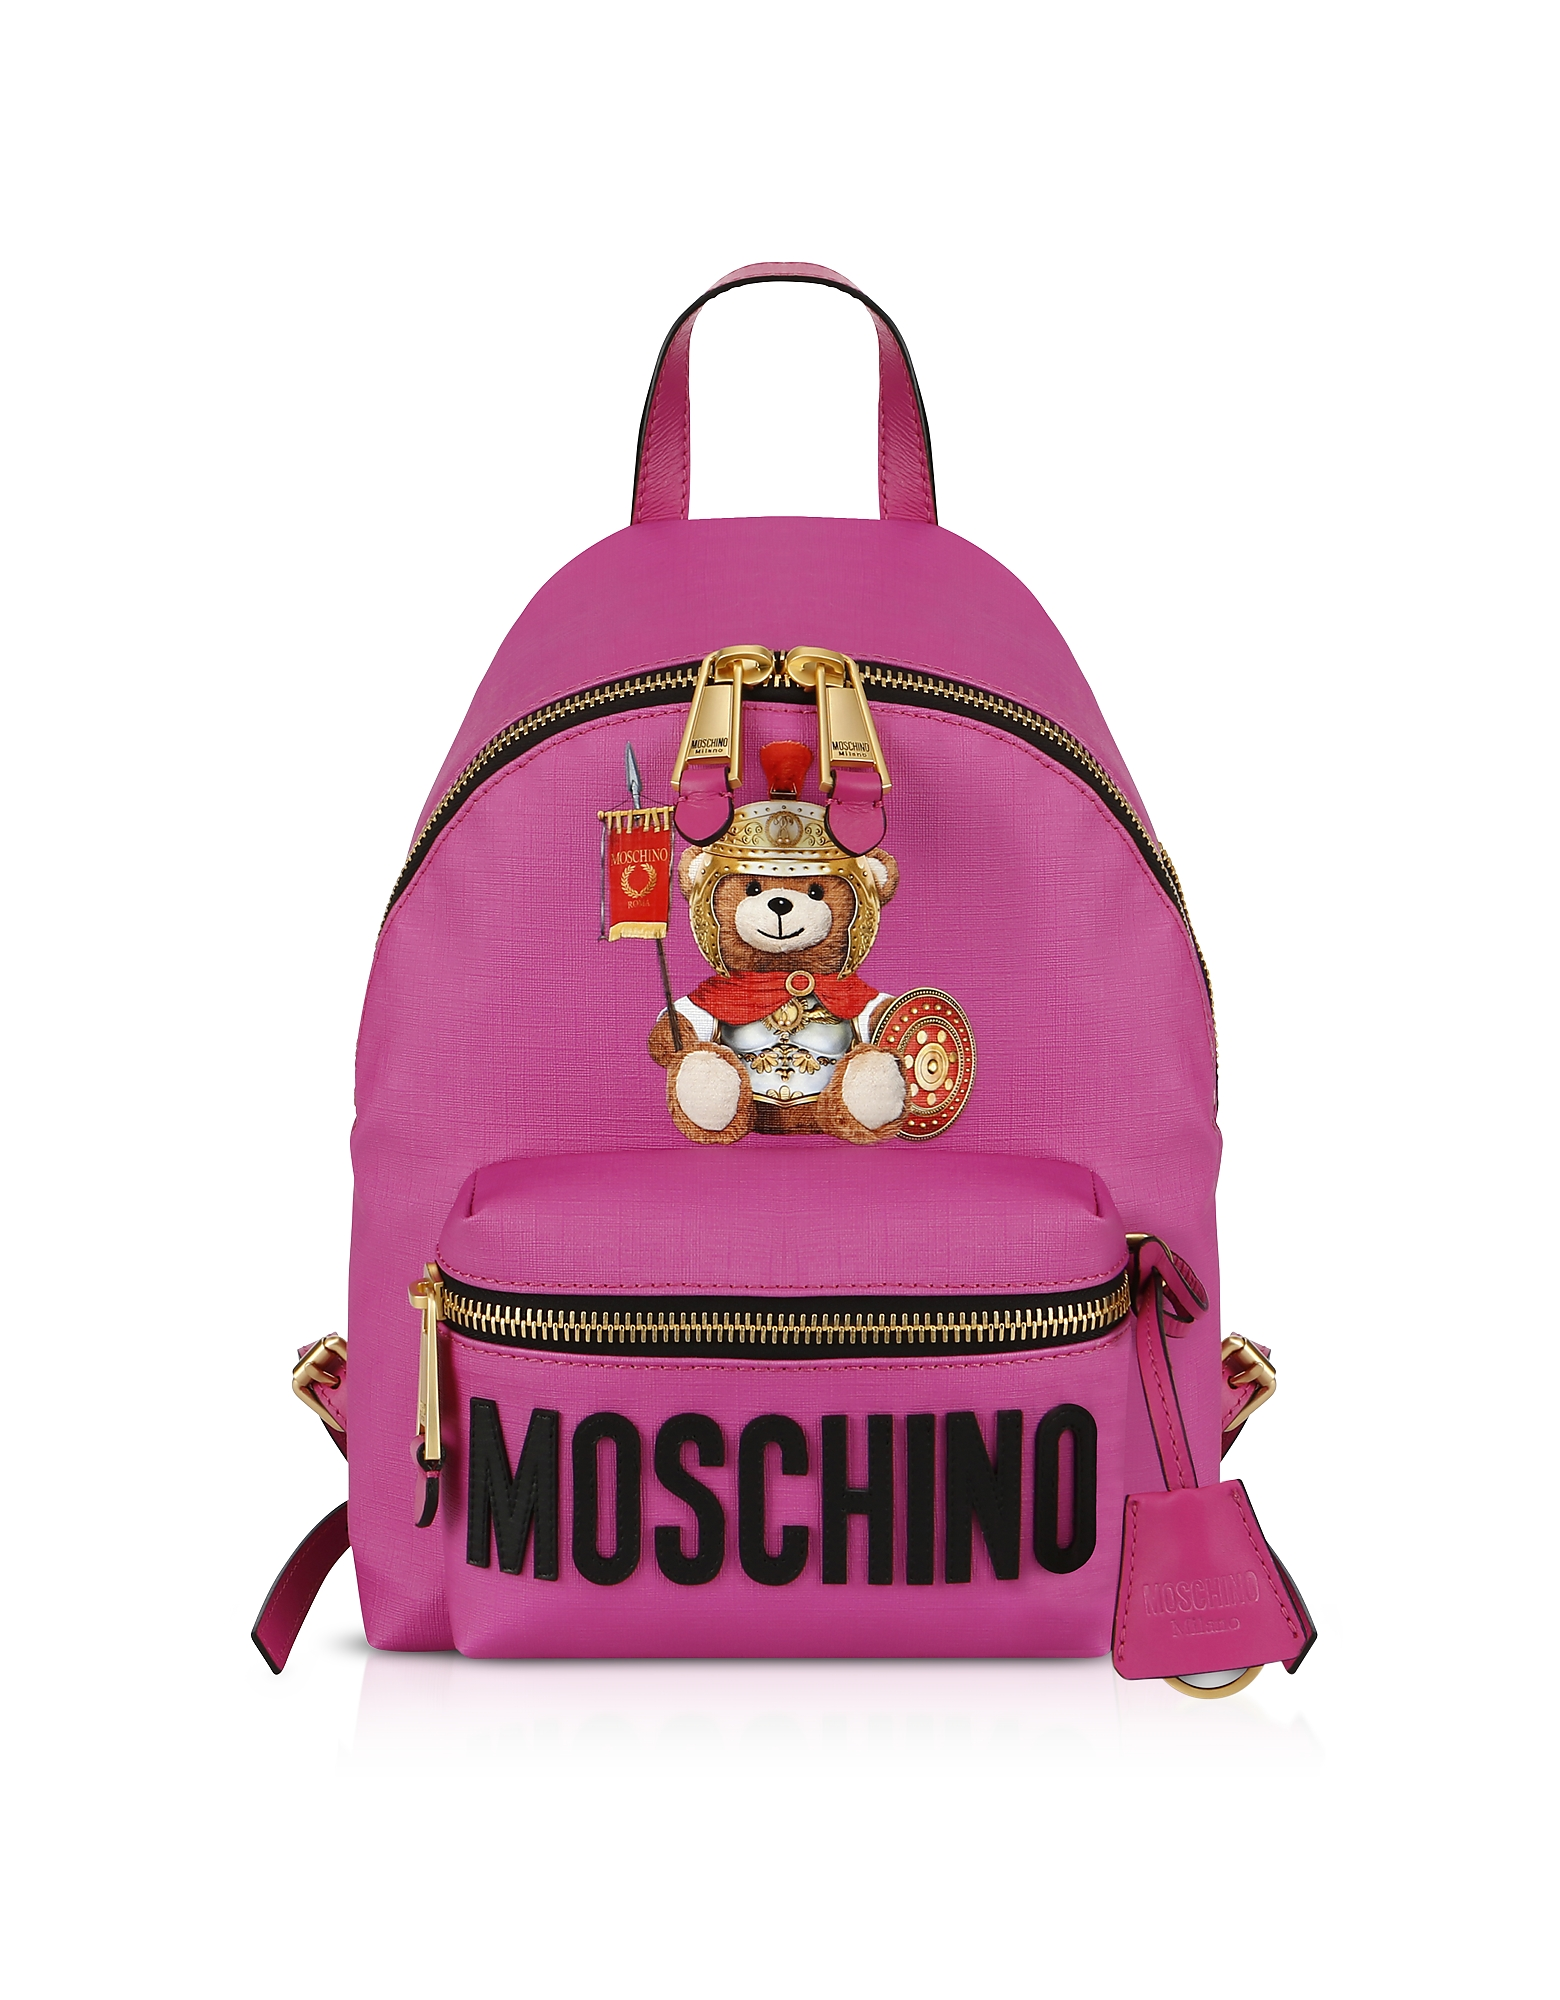 Moschino Designer Handbags, Teddy Bear Nylon Backpack